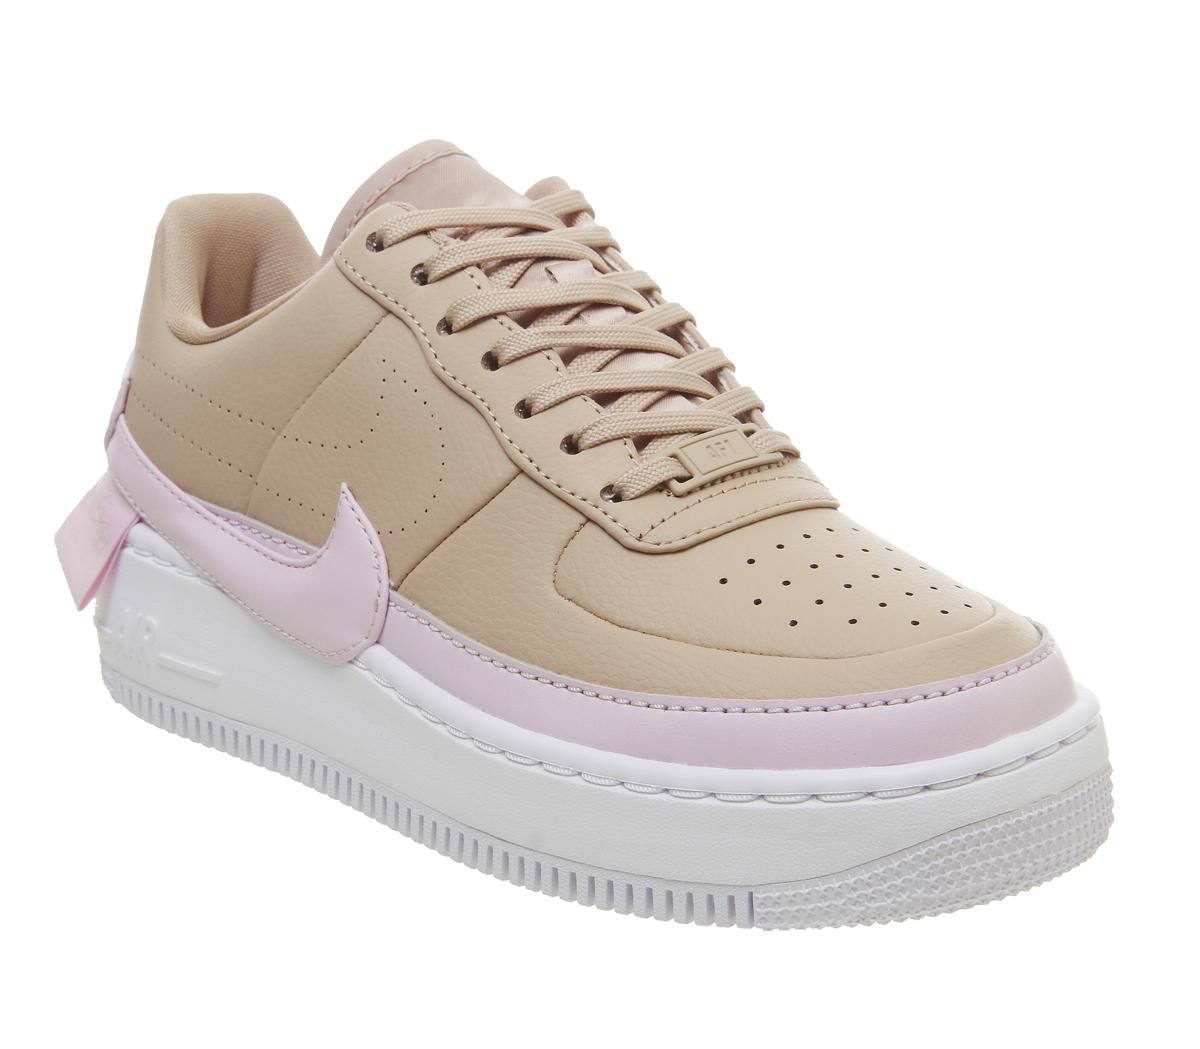 Florecer Ciencias Sociales Debe  Nike Air Force 1 Jester Trainers Bio Beige Pink Force White - Hers trainers